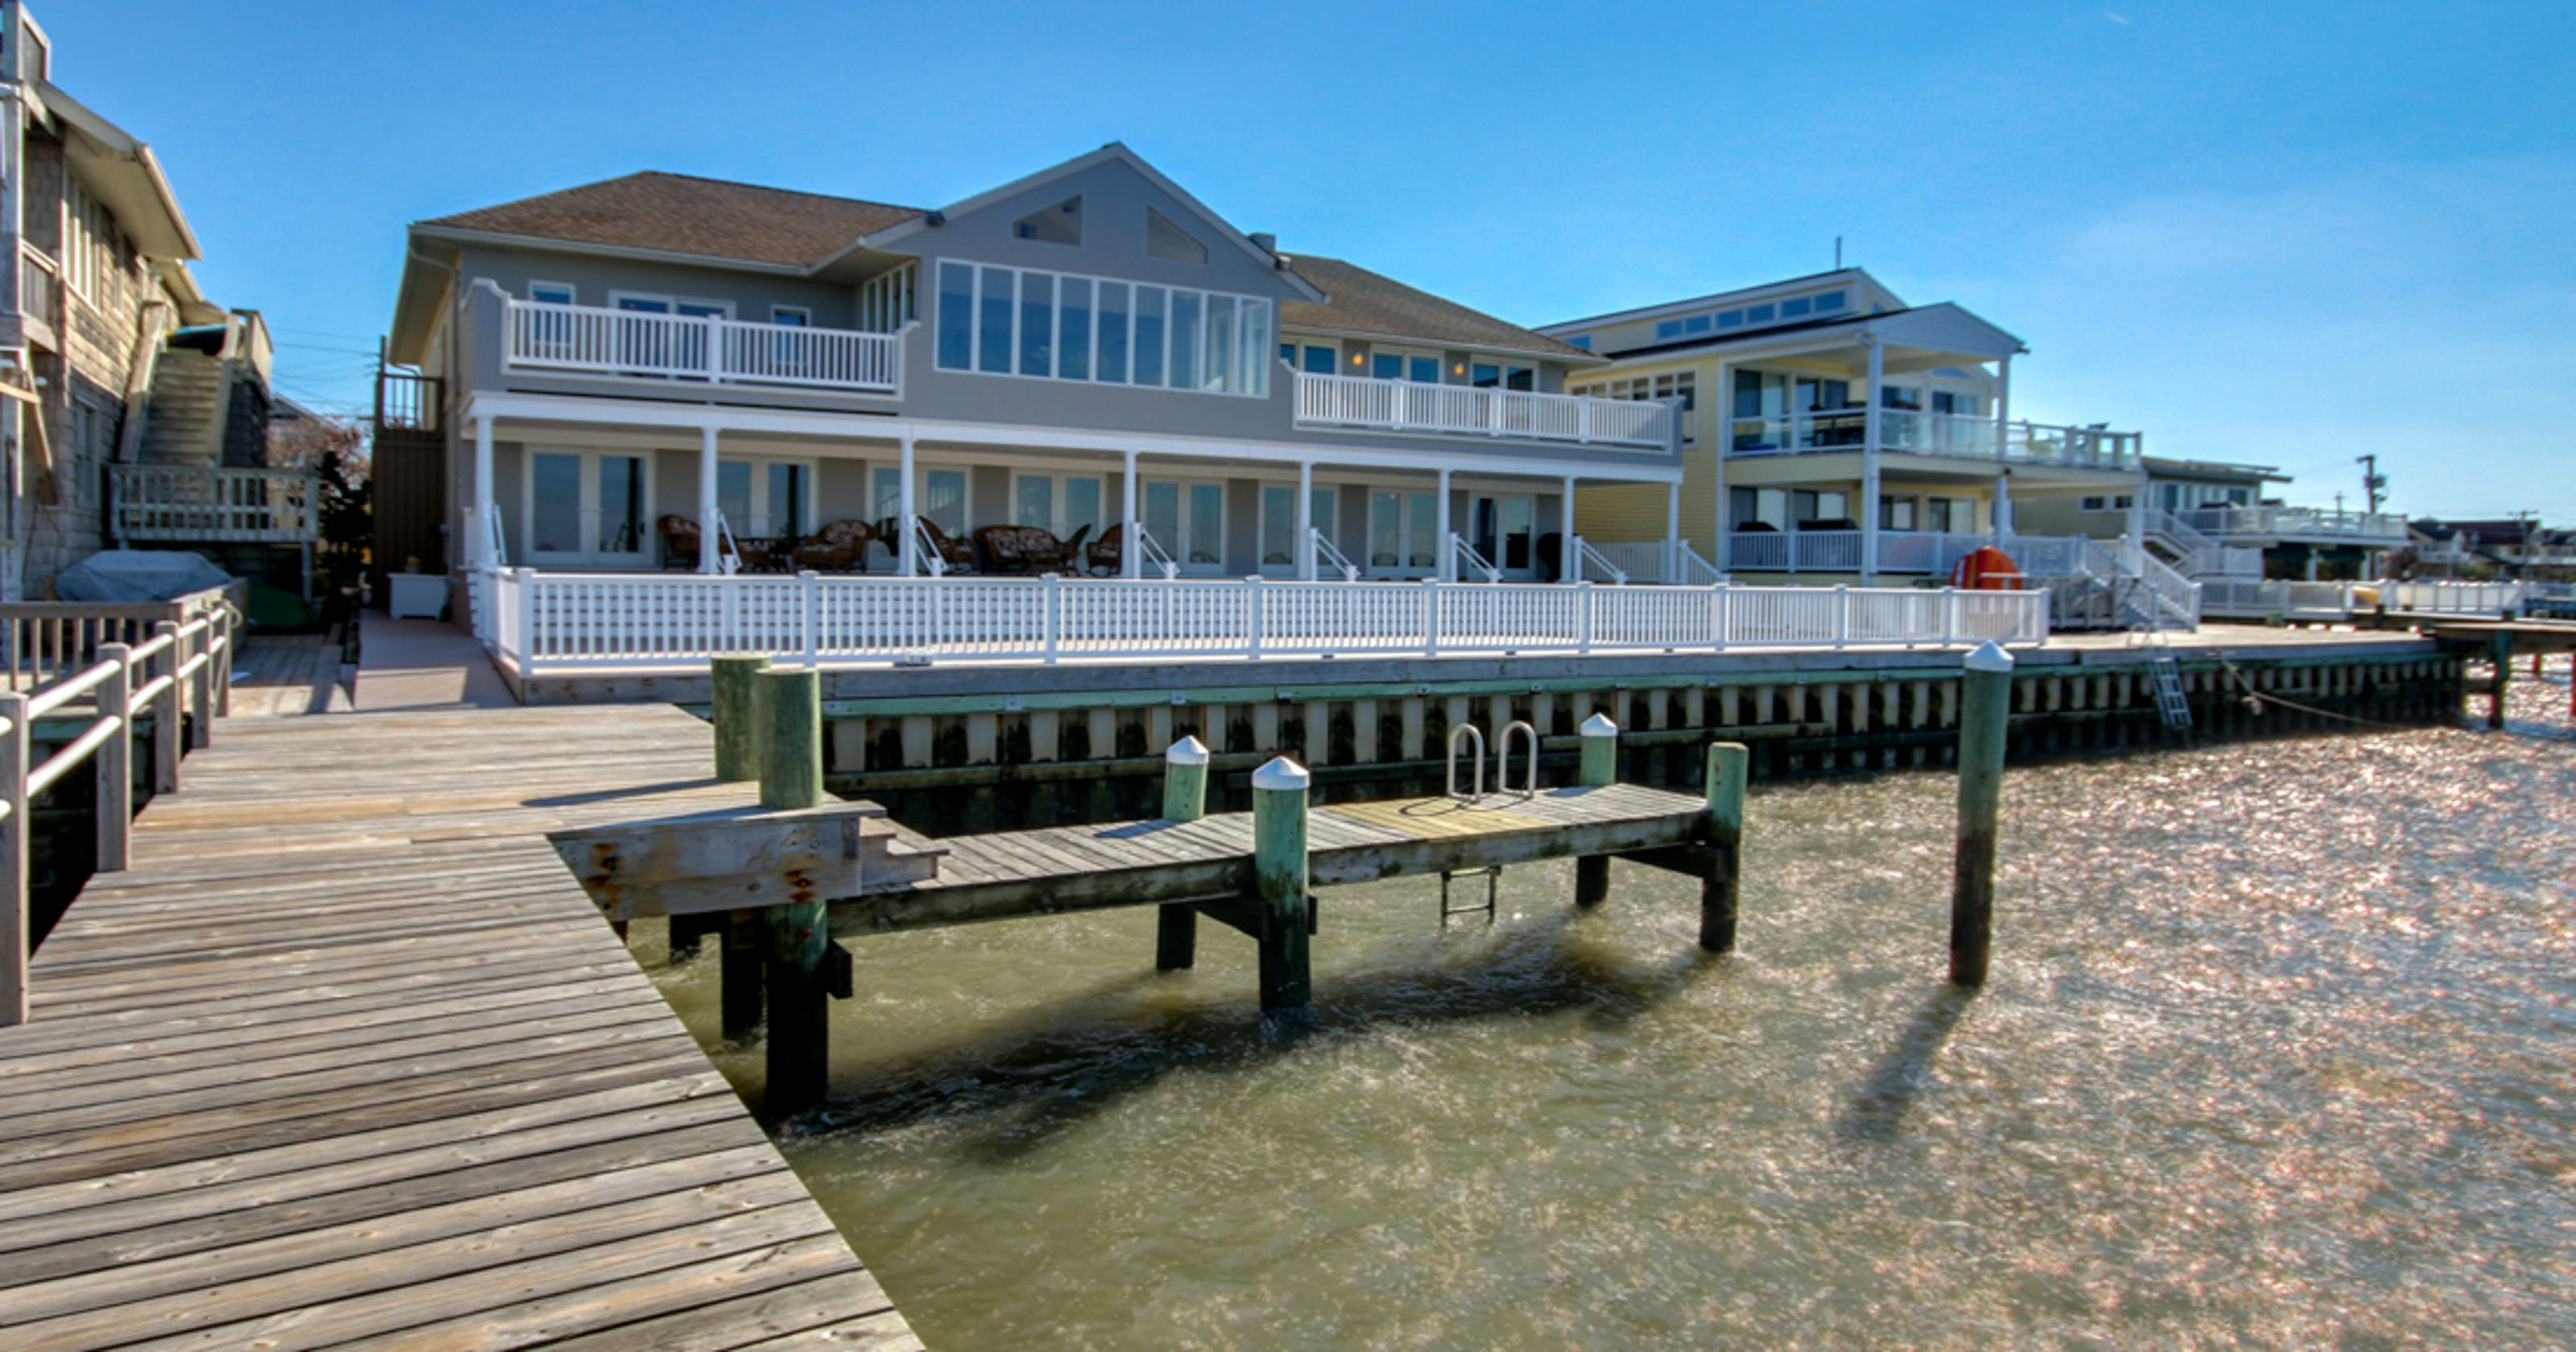 Waterfront Mansion In Cape May County